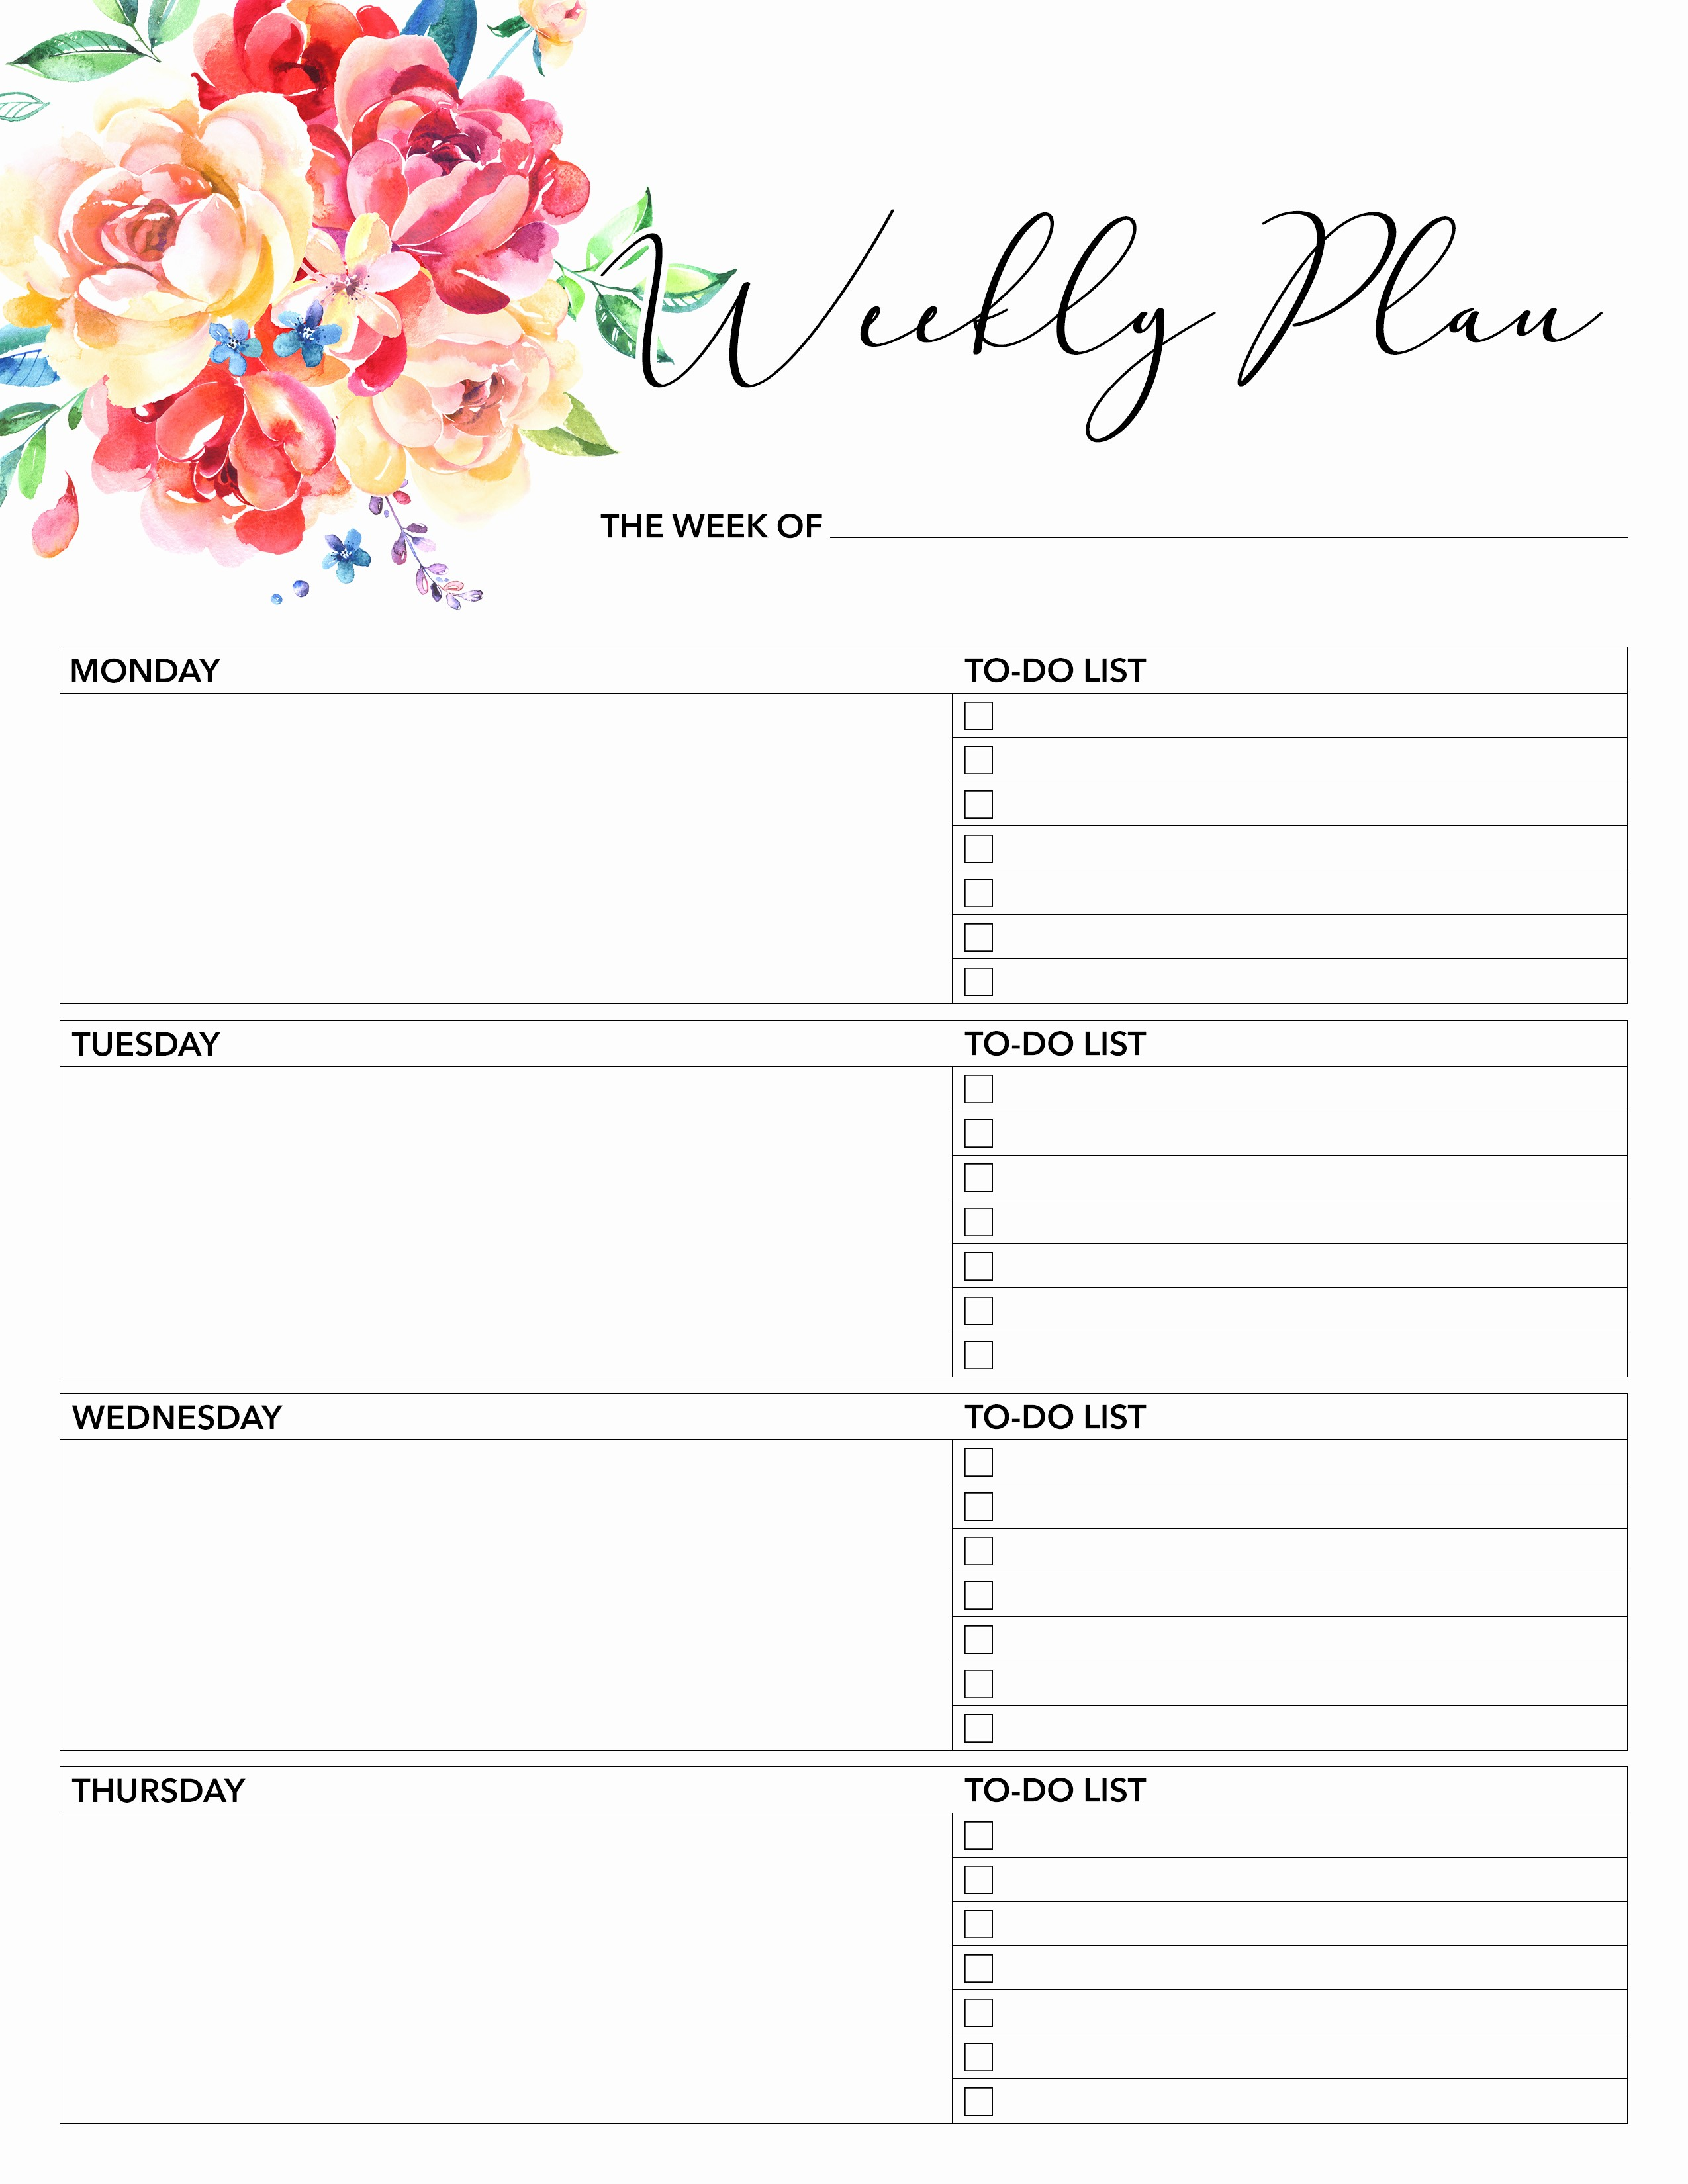 Free Printable Daily Calendar 2018 Elegant Free Printable 2018 Planner 50 Plus Printable Pages the